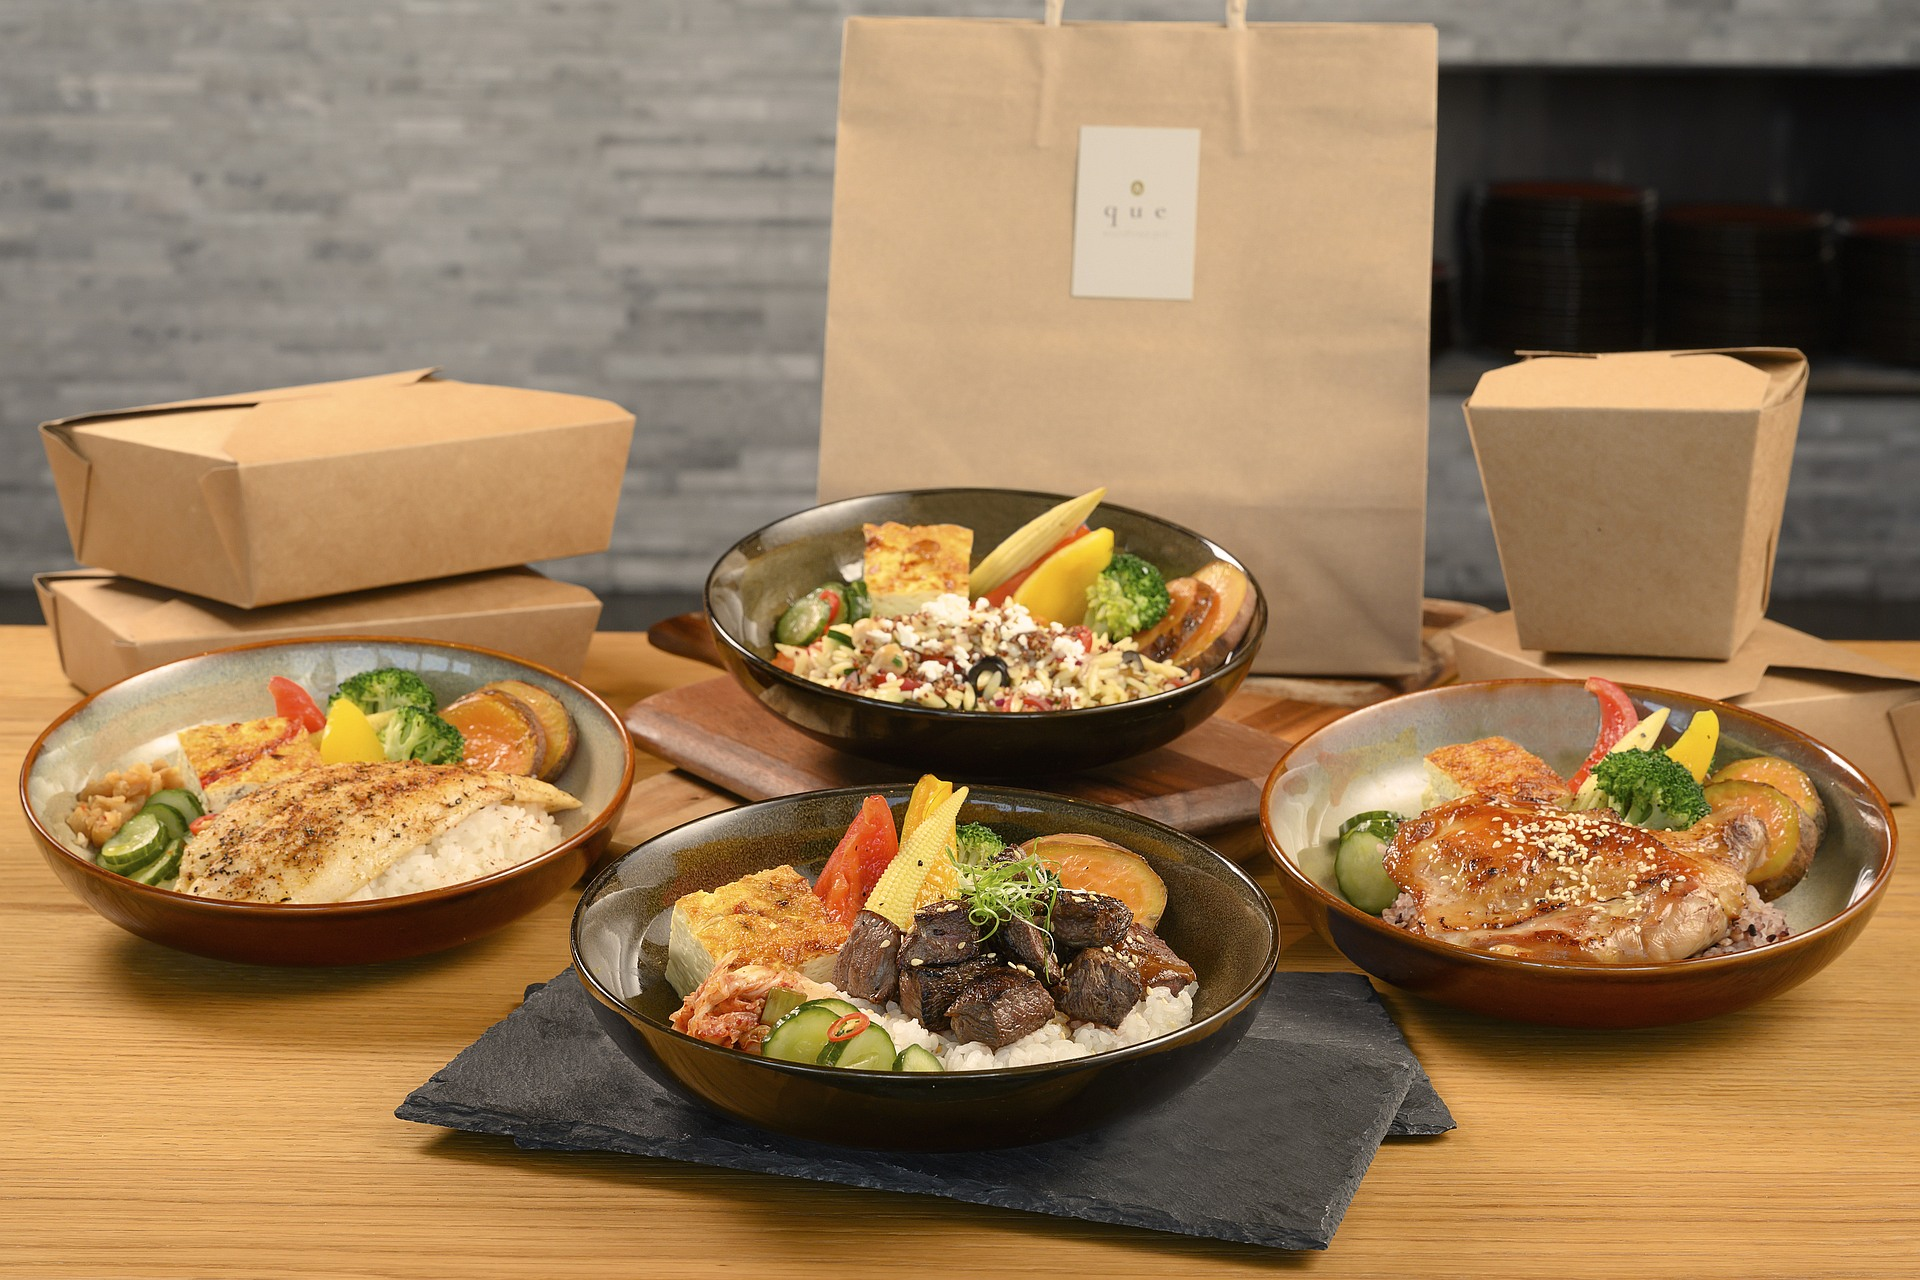 amba Taipei Songshan hotel Que restaurant super value bento boxes takeout and food delivery service